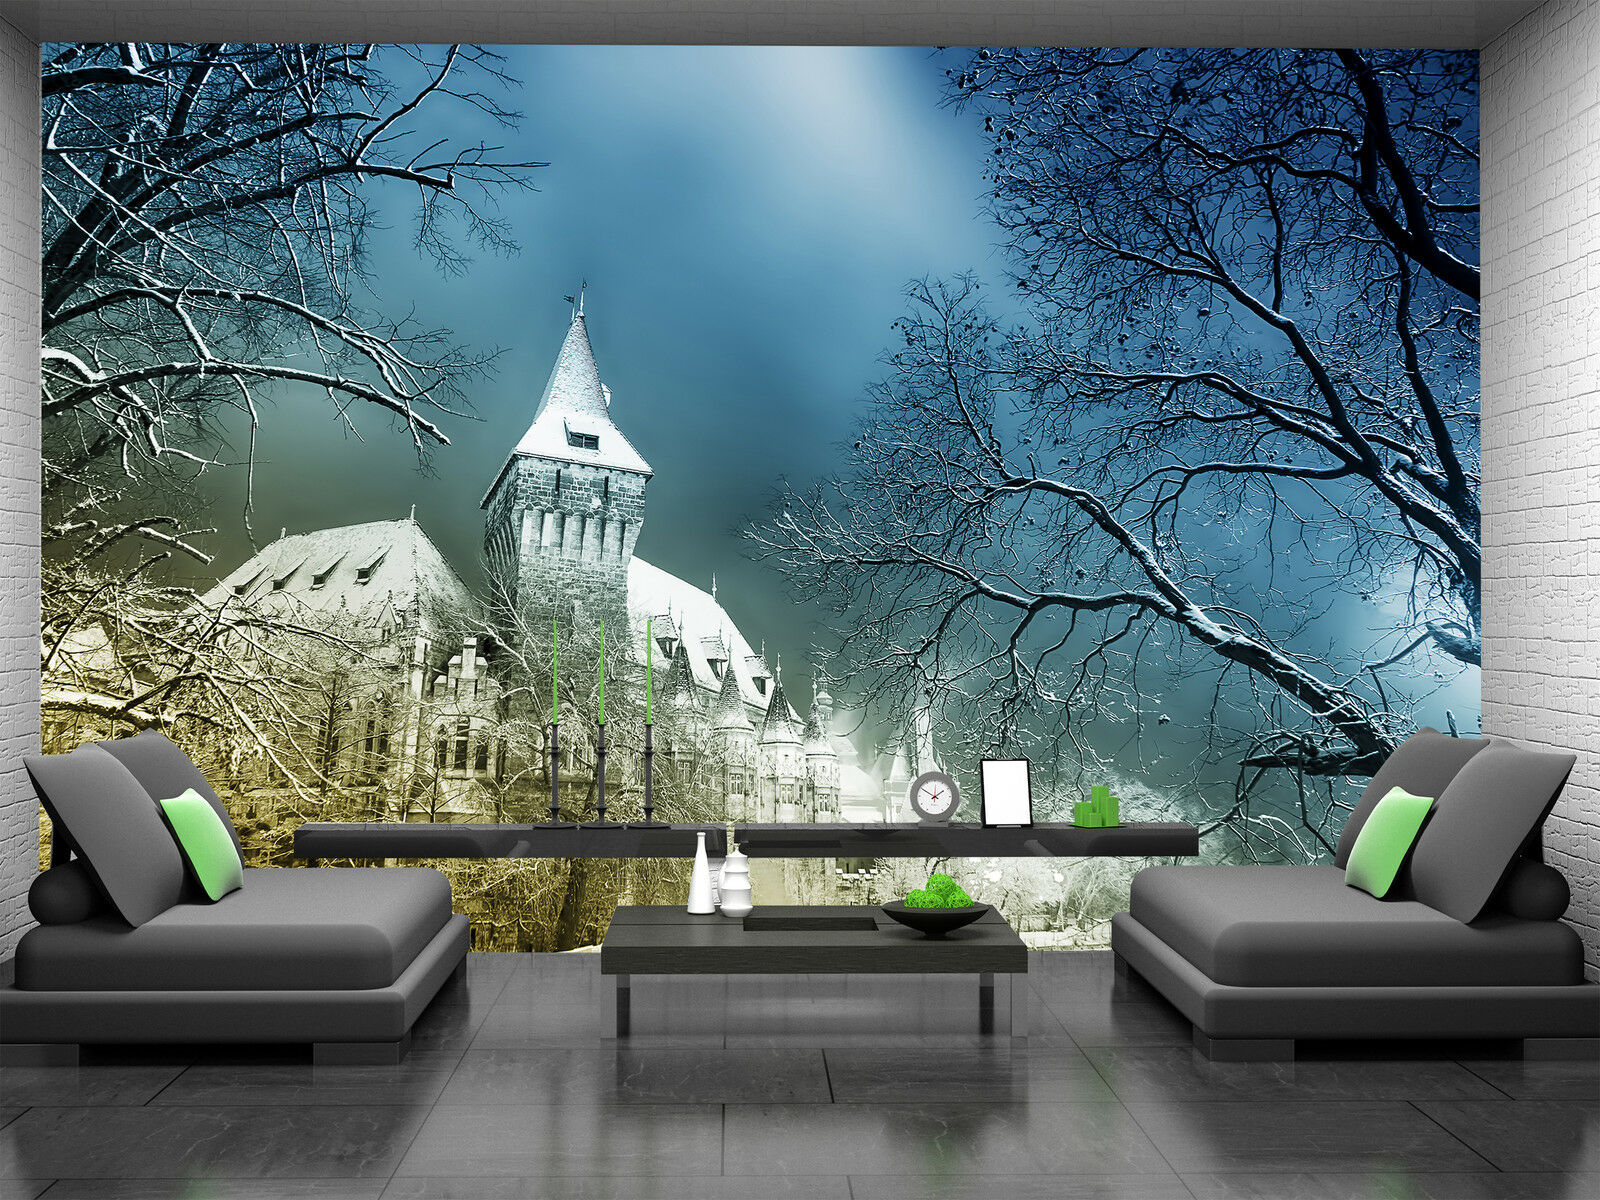 Fairy-tale Castle at Night Wall Mural Photo Wallpaper GIANT DECOR Paper Poster